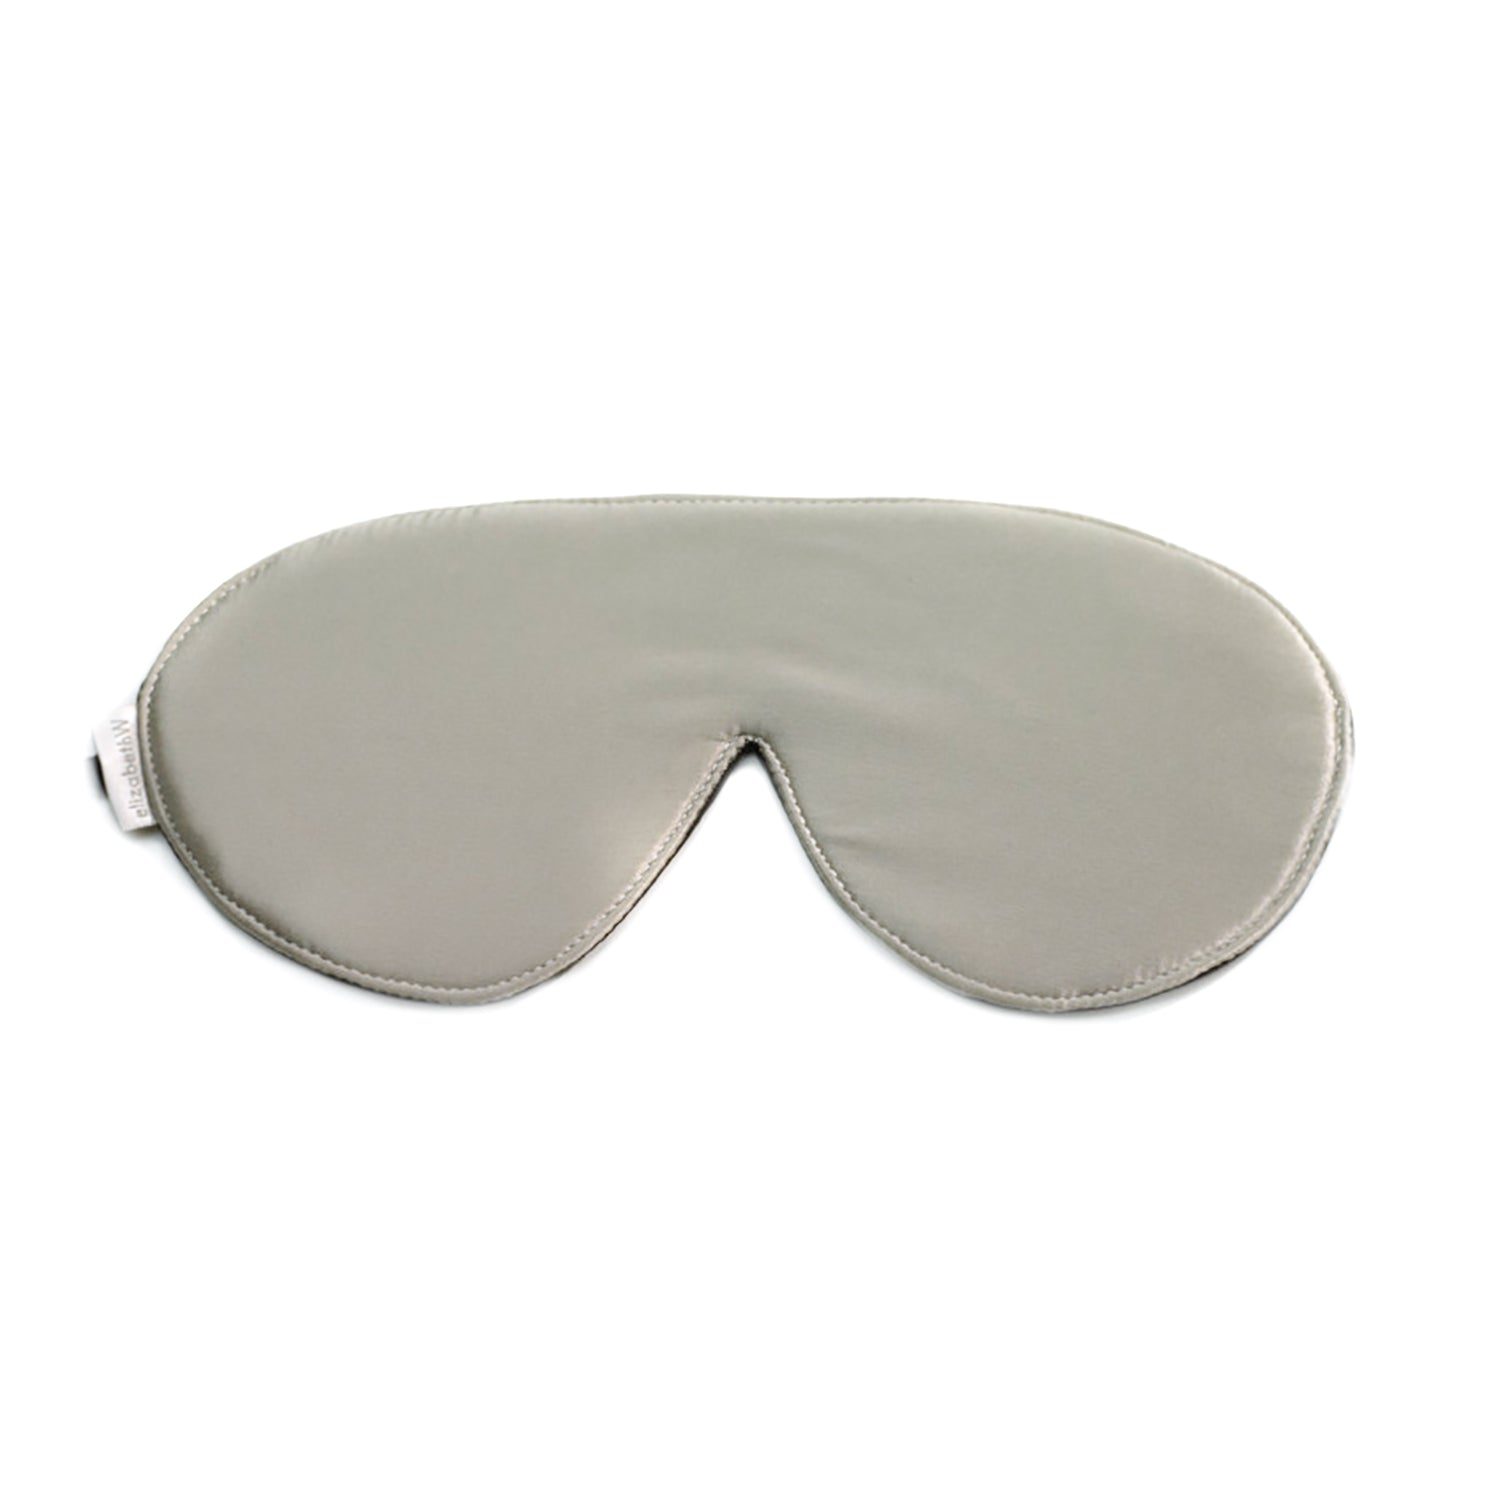 Silver Sleep Mask